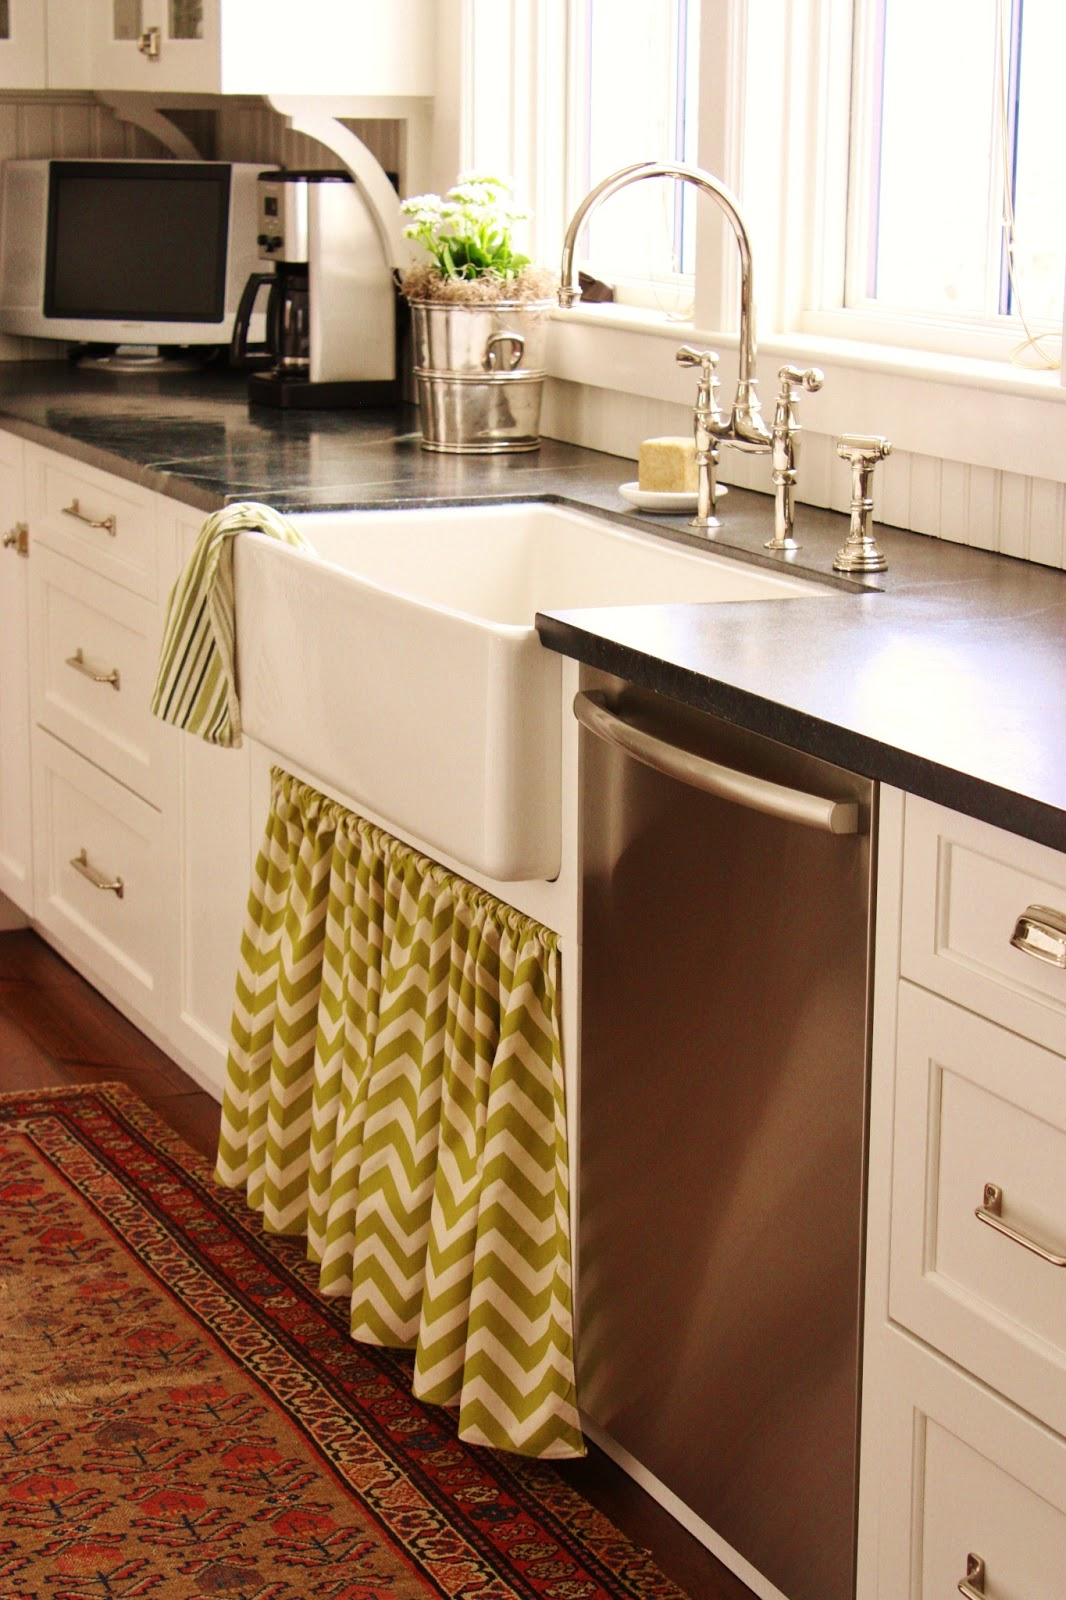 For The Love Of A House: A New Kitchen Skirt For Spring